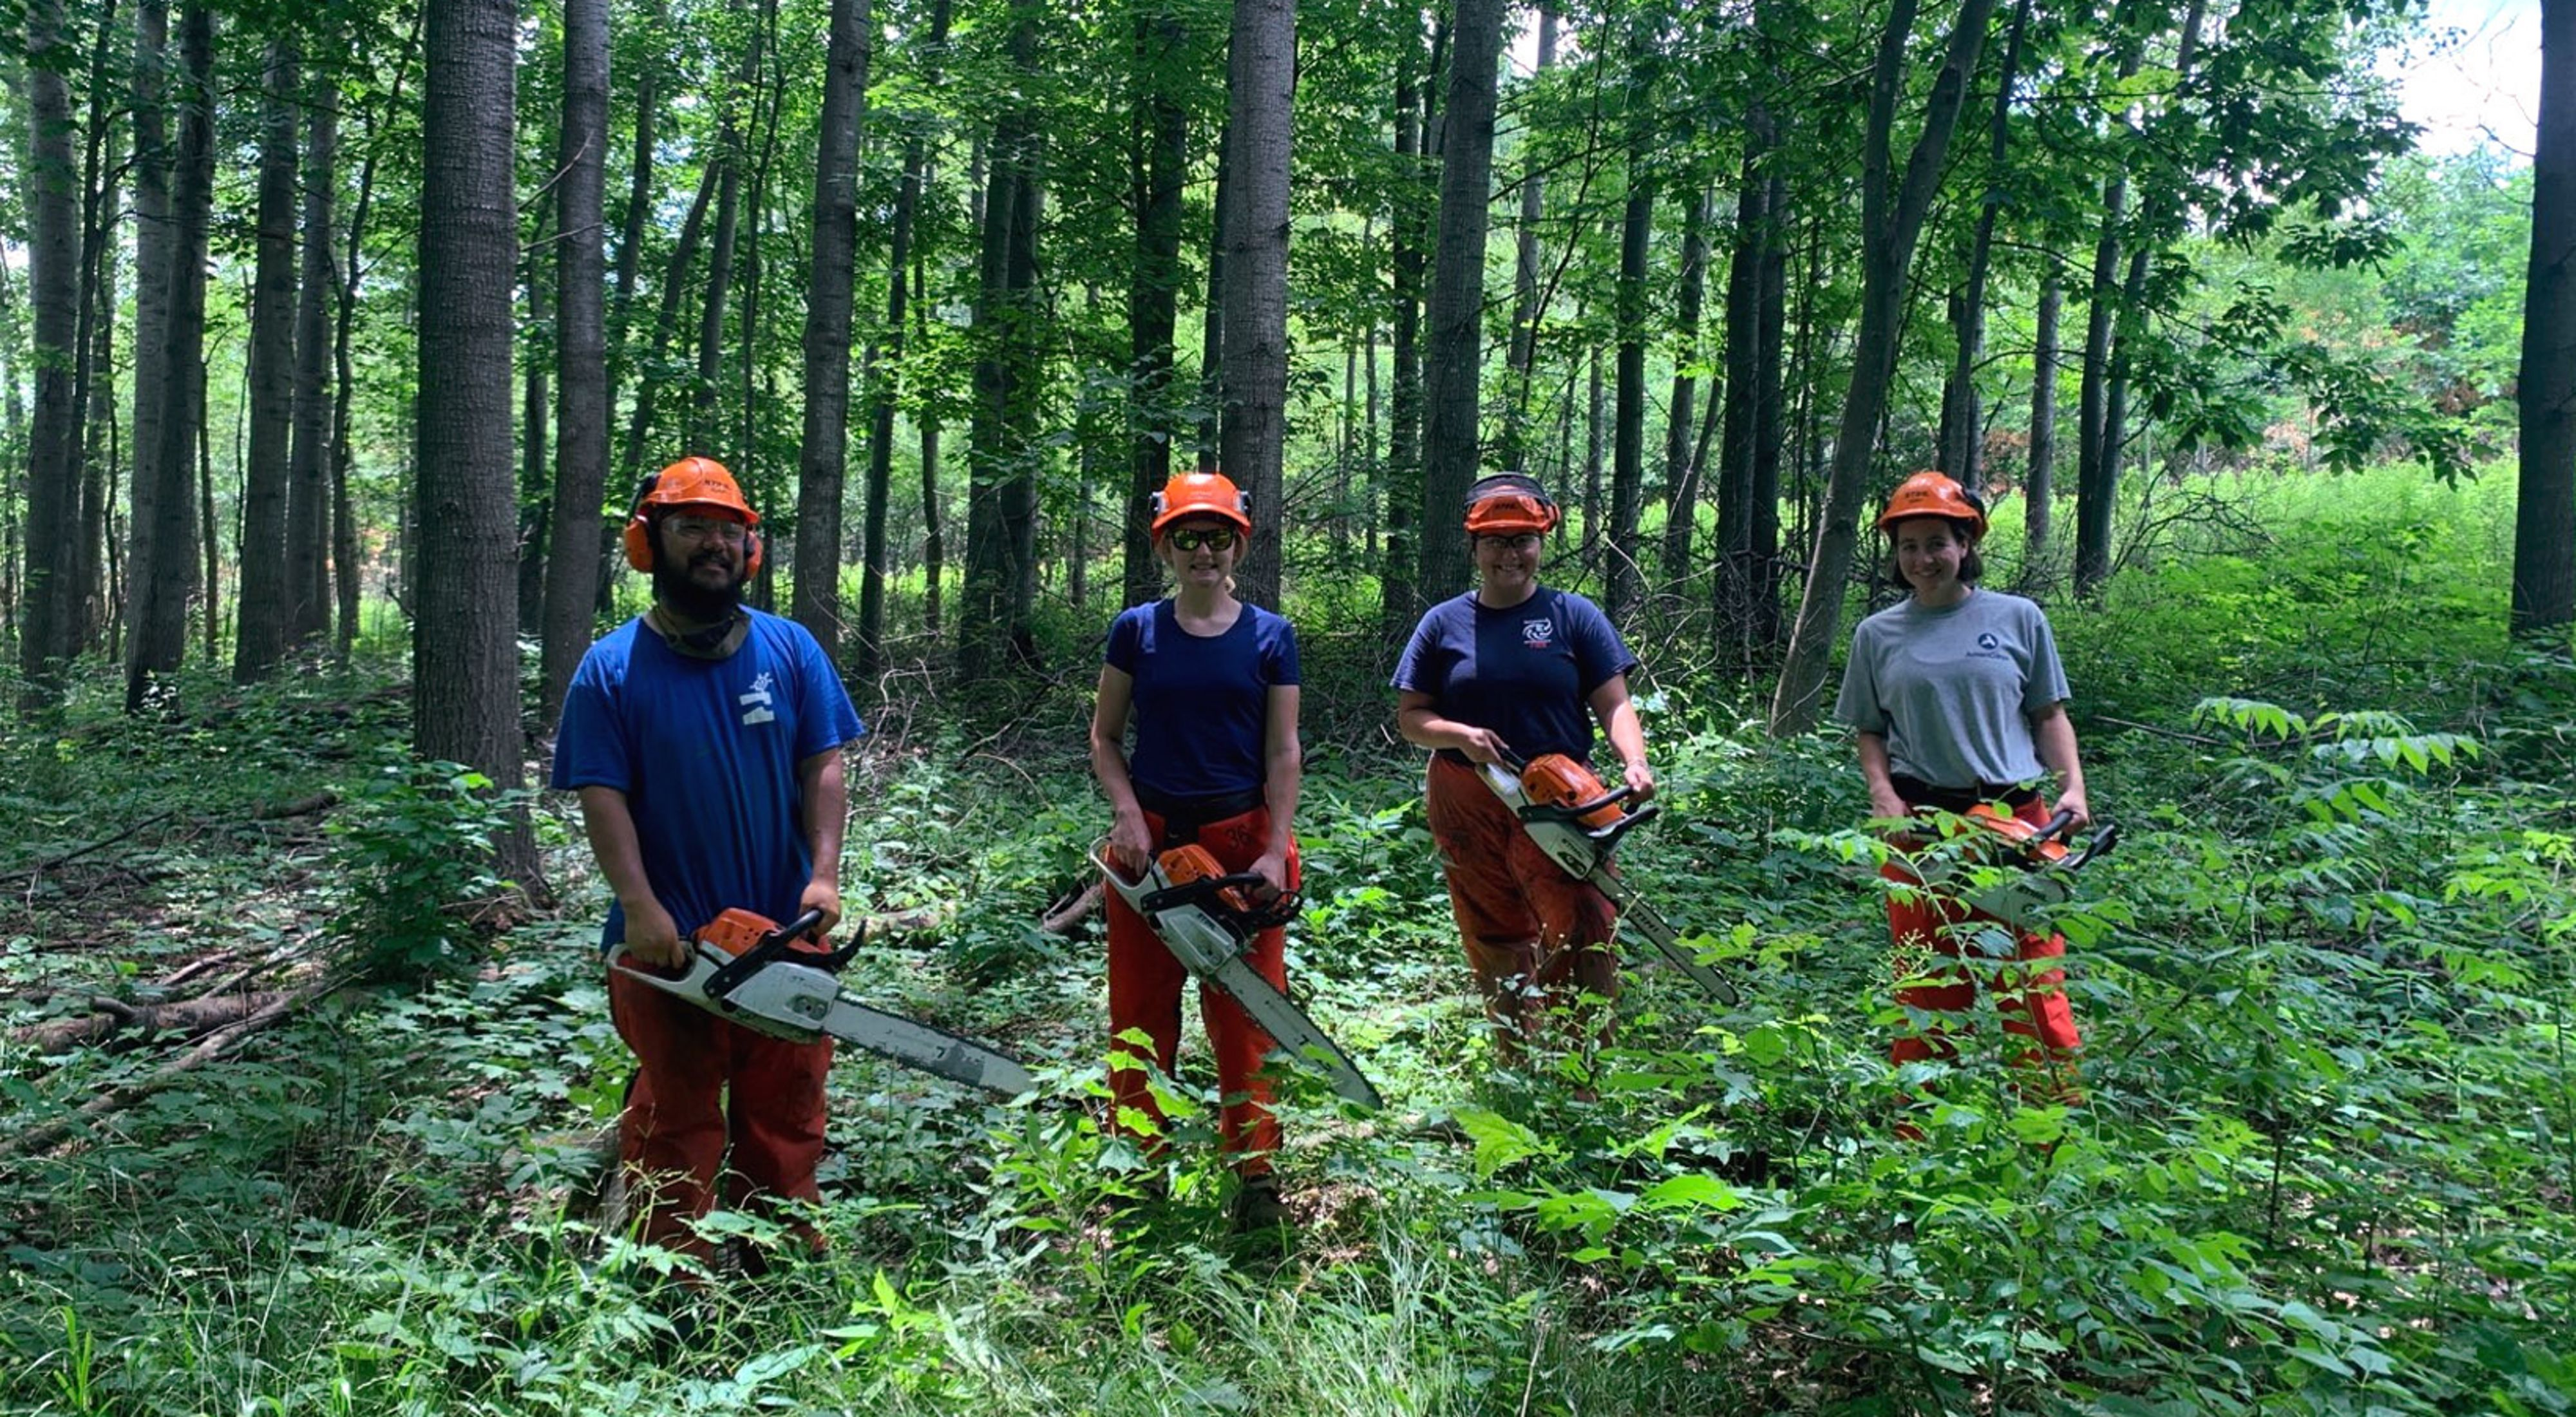 Fie Thao, Gabbi Genz, Karina Cardella and Bobbi Rooney stand in a row in the middle of a green forest, each holding a chainsaw and wearing protective gear, all smiling.